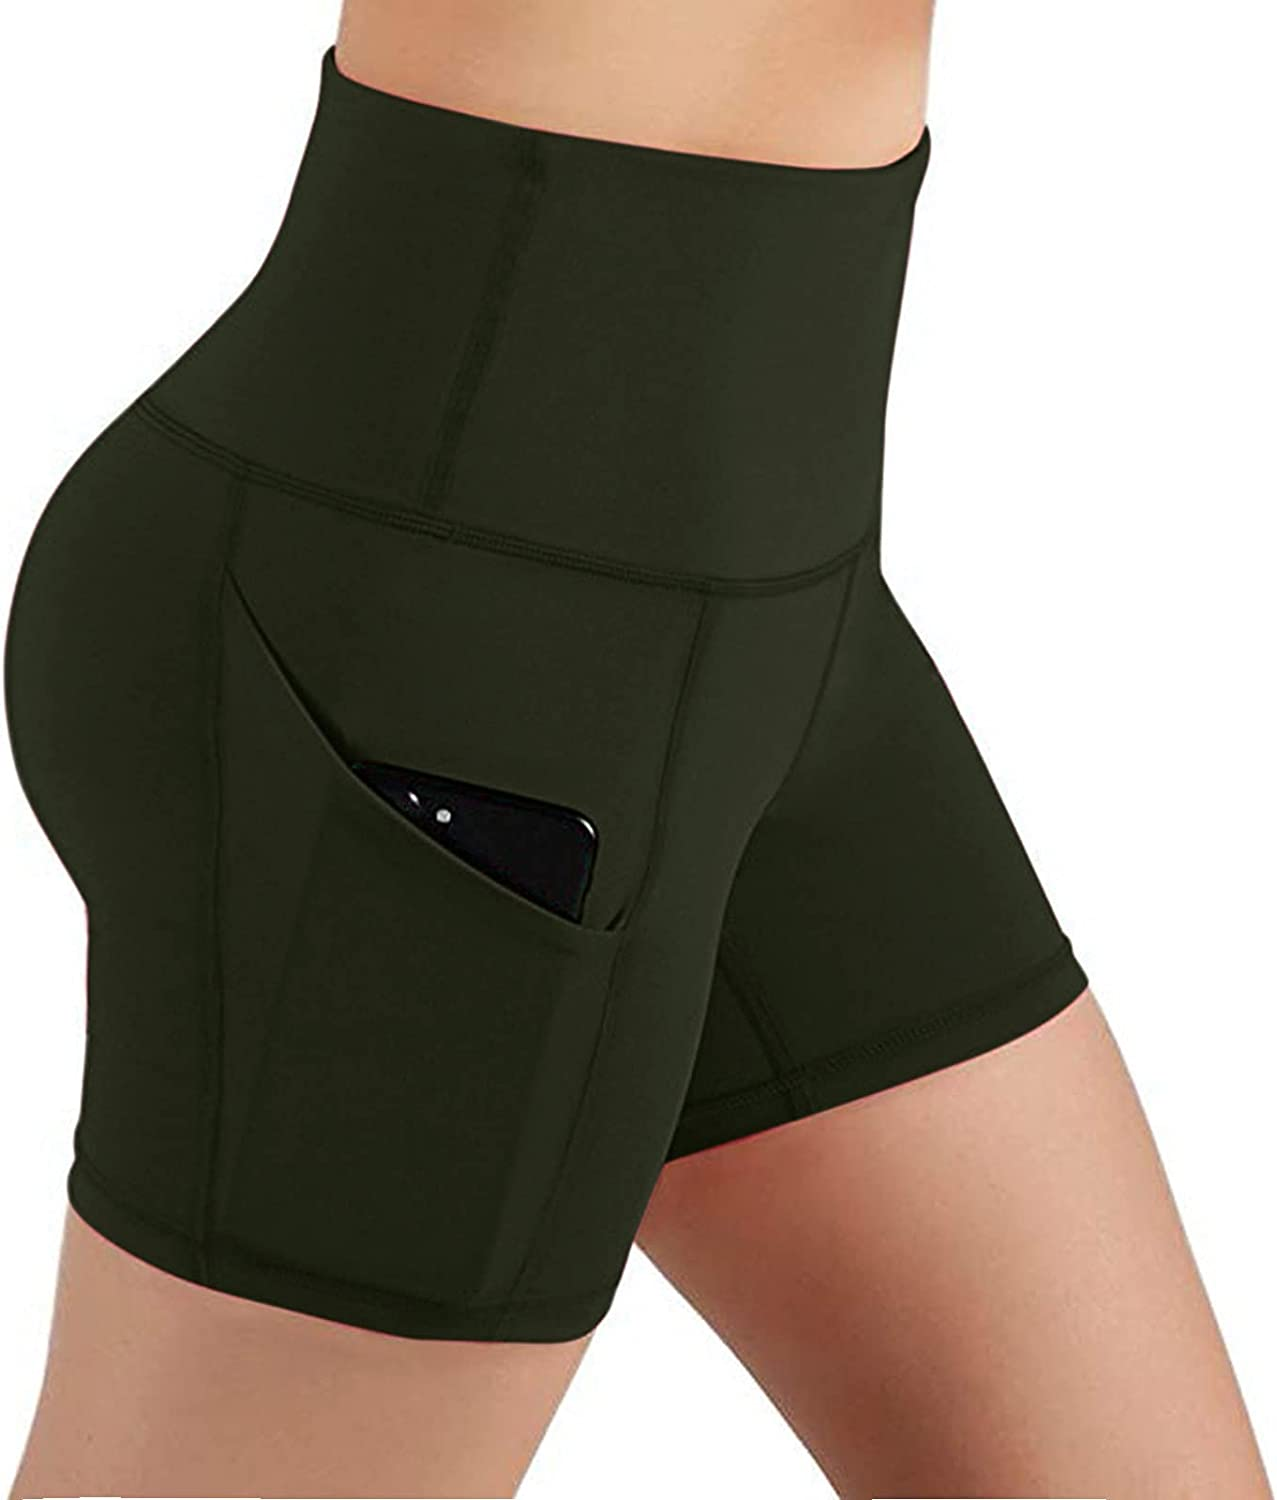 Belcol Women Yoga Shorts, Butt Lifting Tight Splicing Fitness Exercise Activewear Gym Running Workout Leggings with Pocket